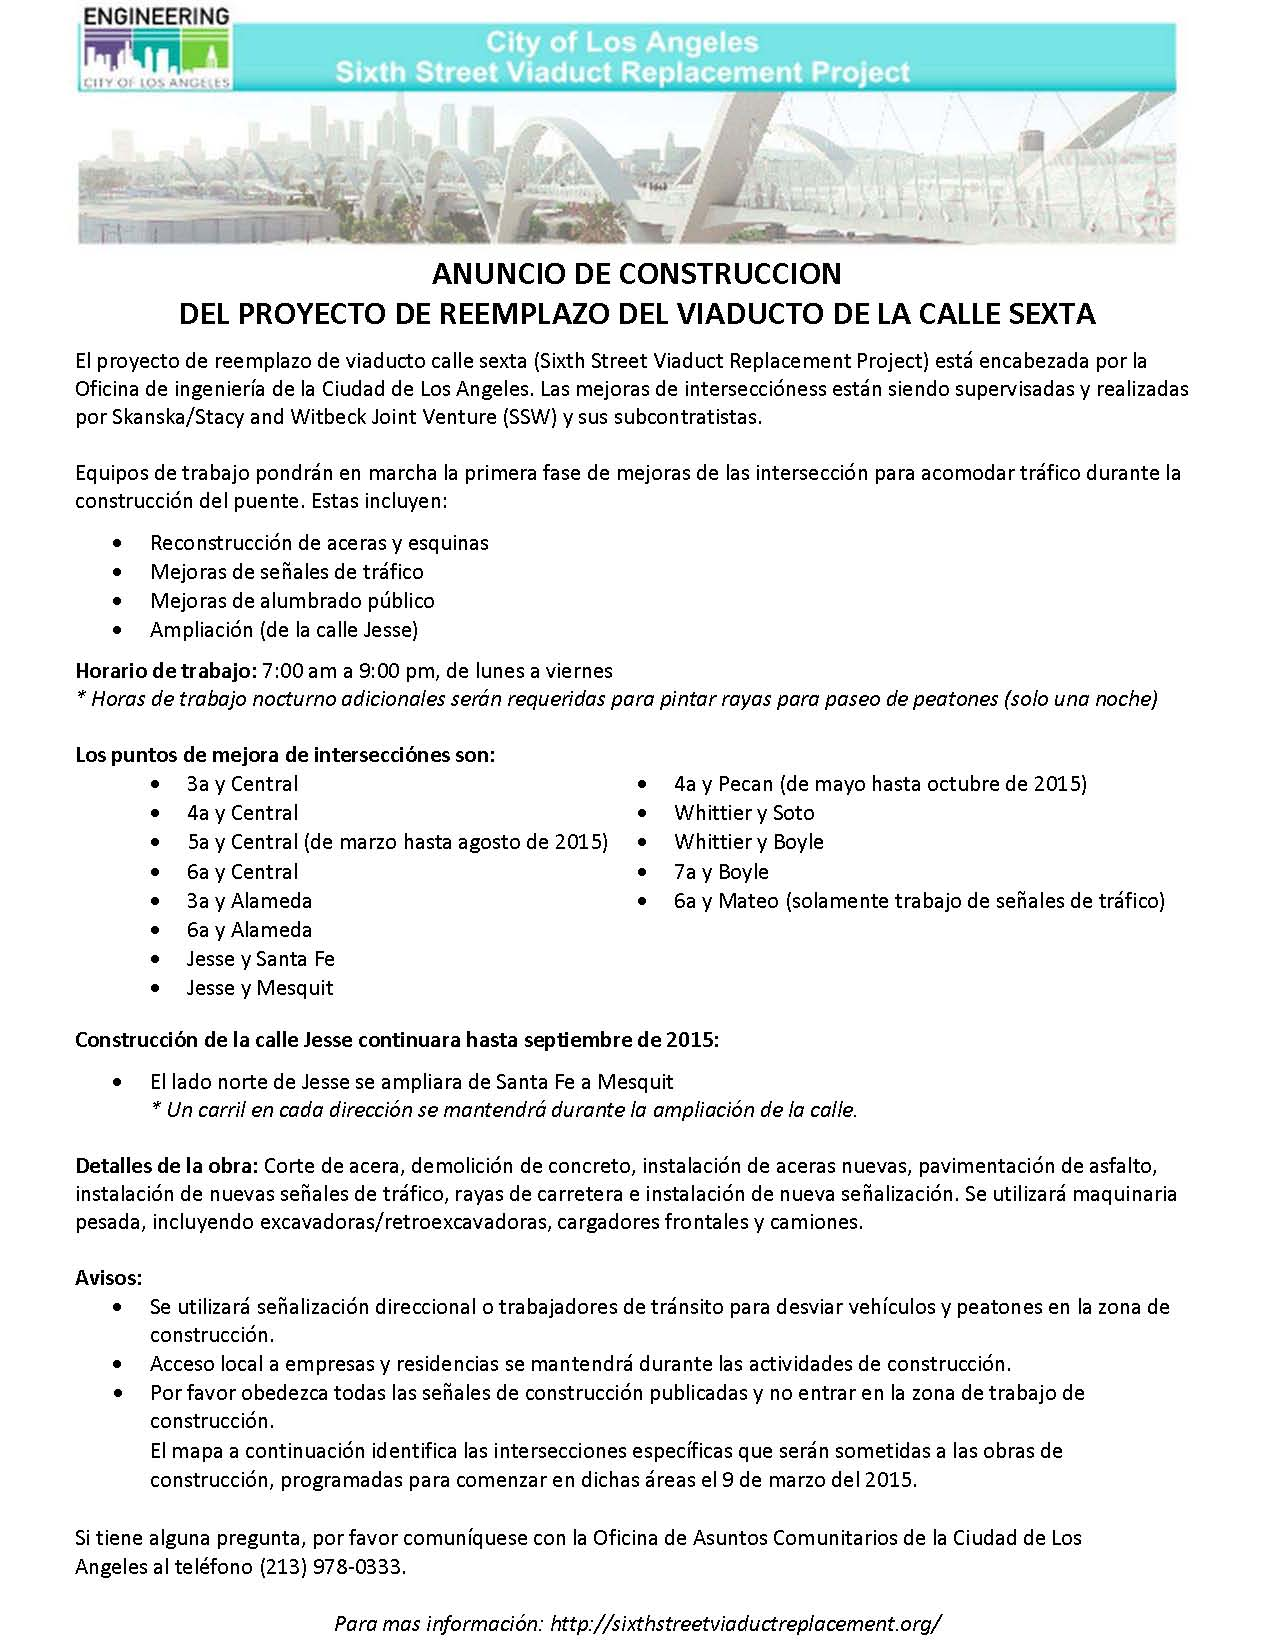 06152015_Spanish_-_Intersection_Improvements_Updated.jpg